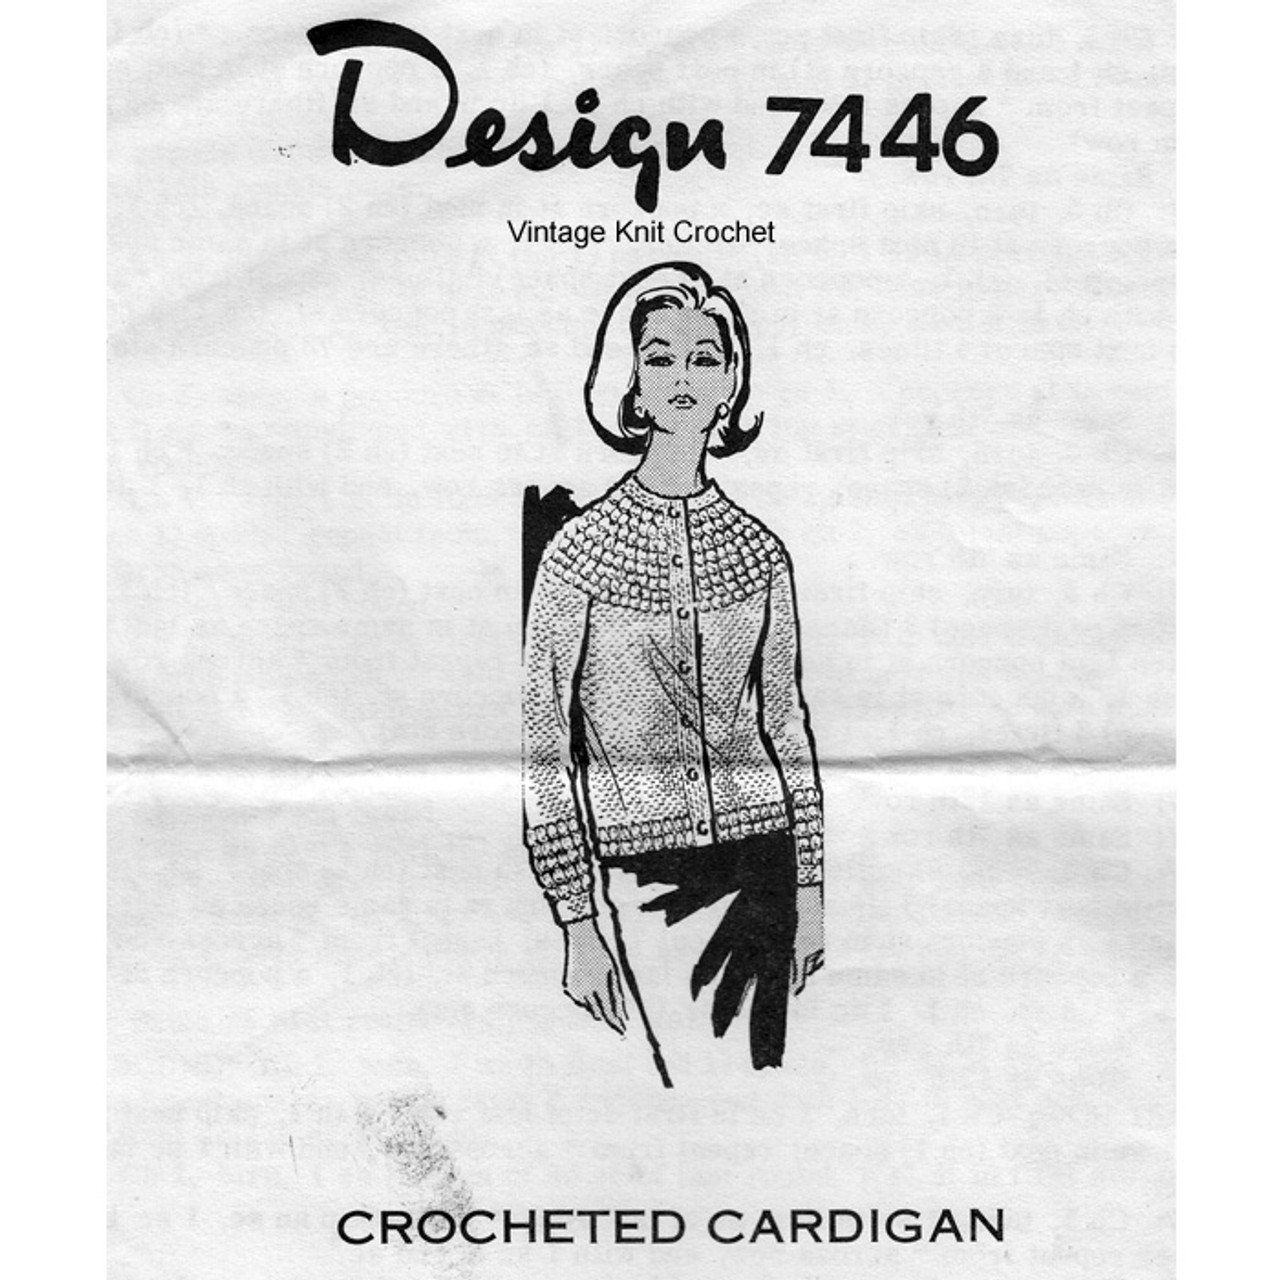 Crochet Cardigan Pattern, Popcorn Trim, Design 7446